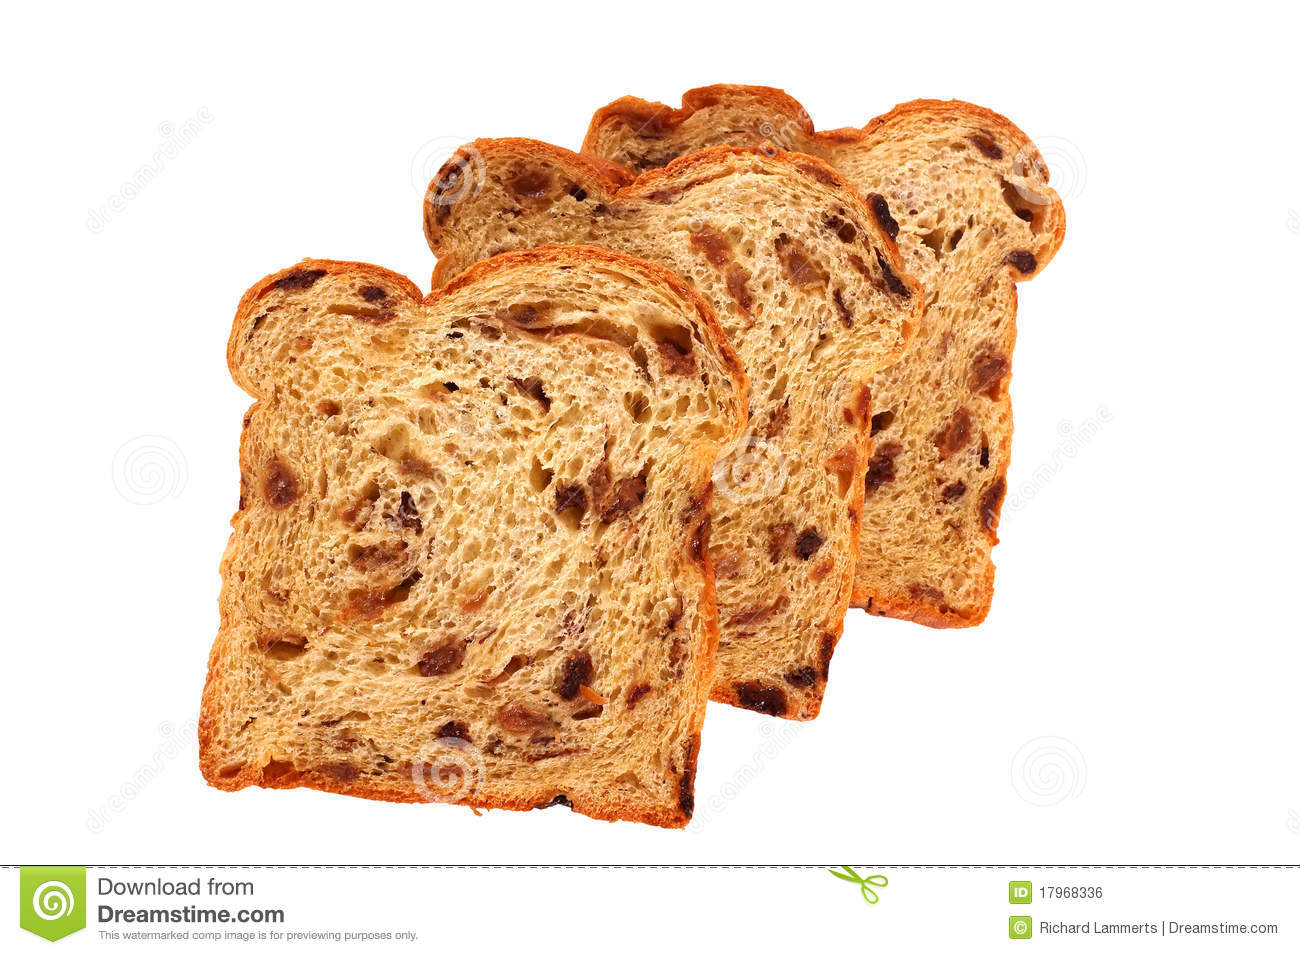 Raisin Bread Royalty Free Stock Image - Image: 17968336